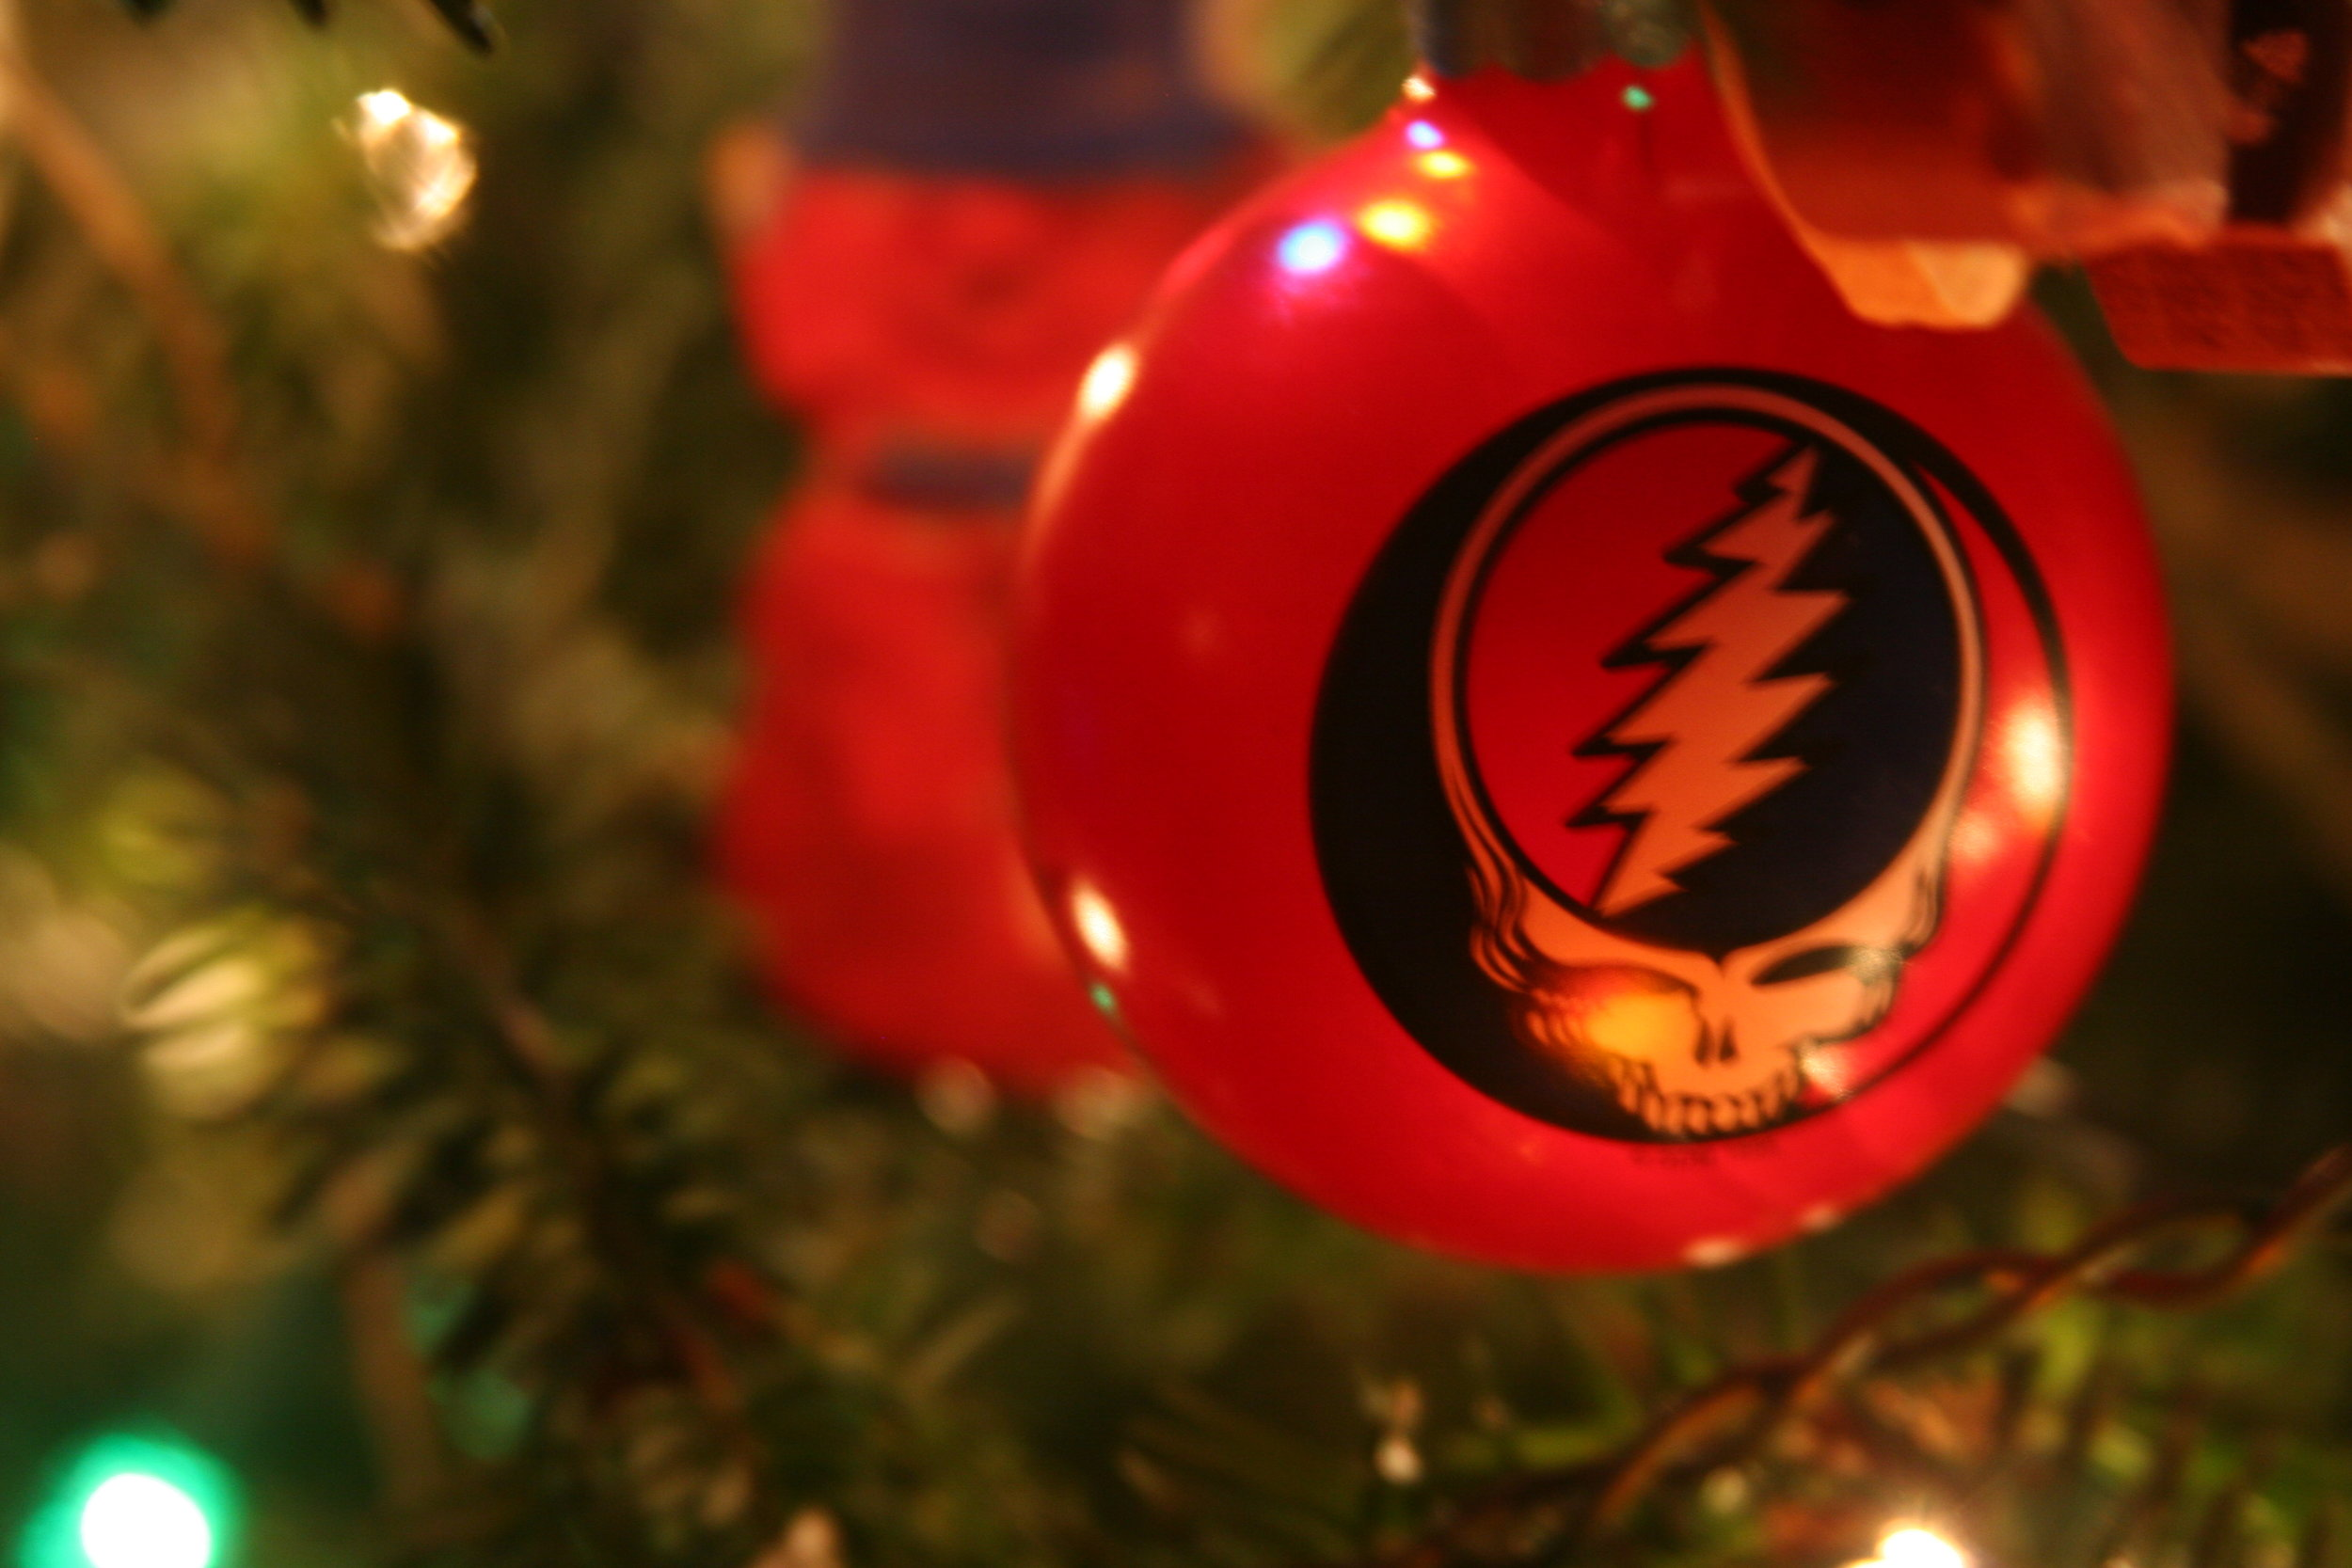 Have a Jerry Christmas. Photo by RD Mathers